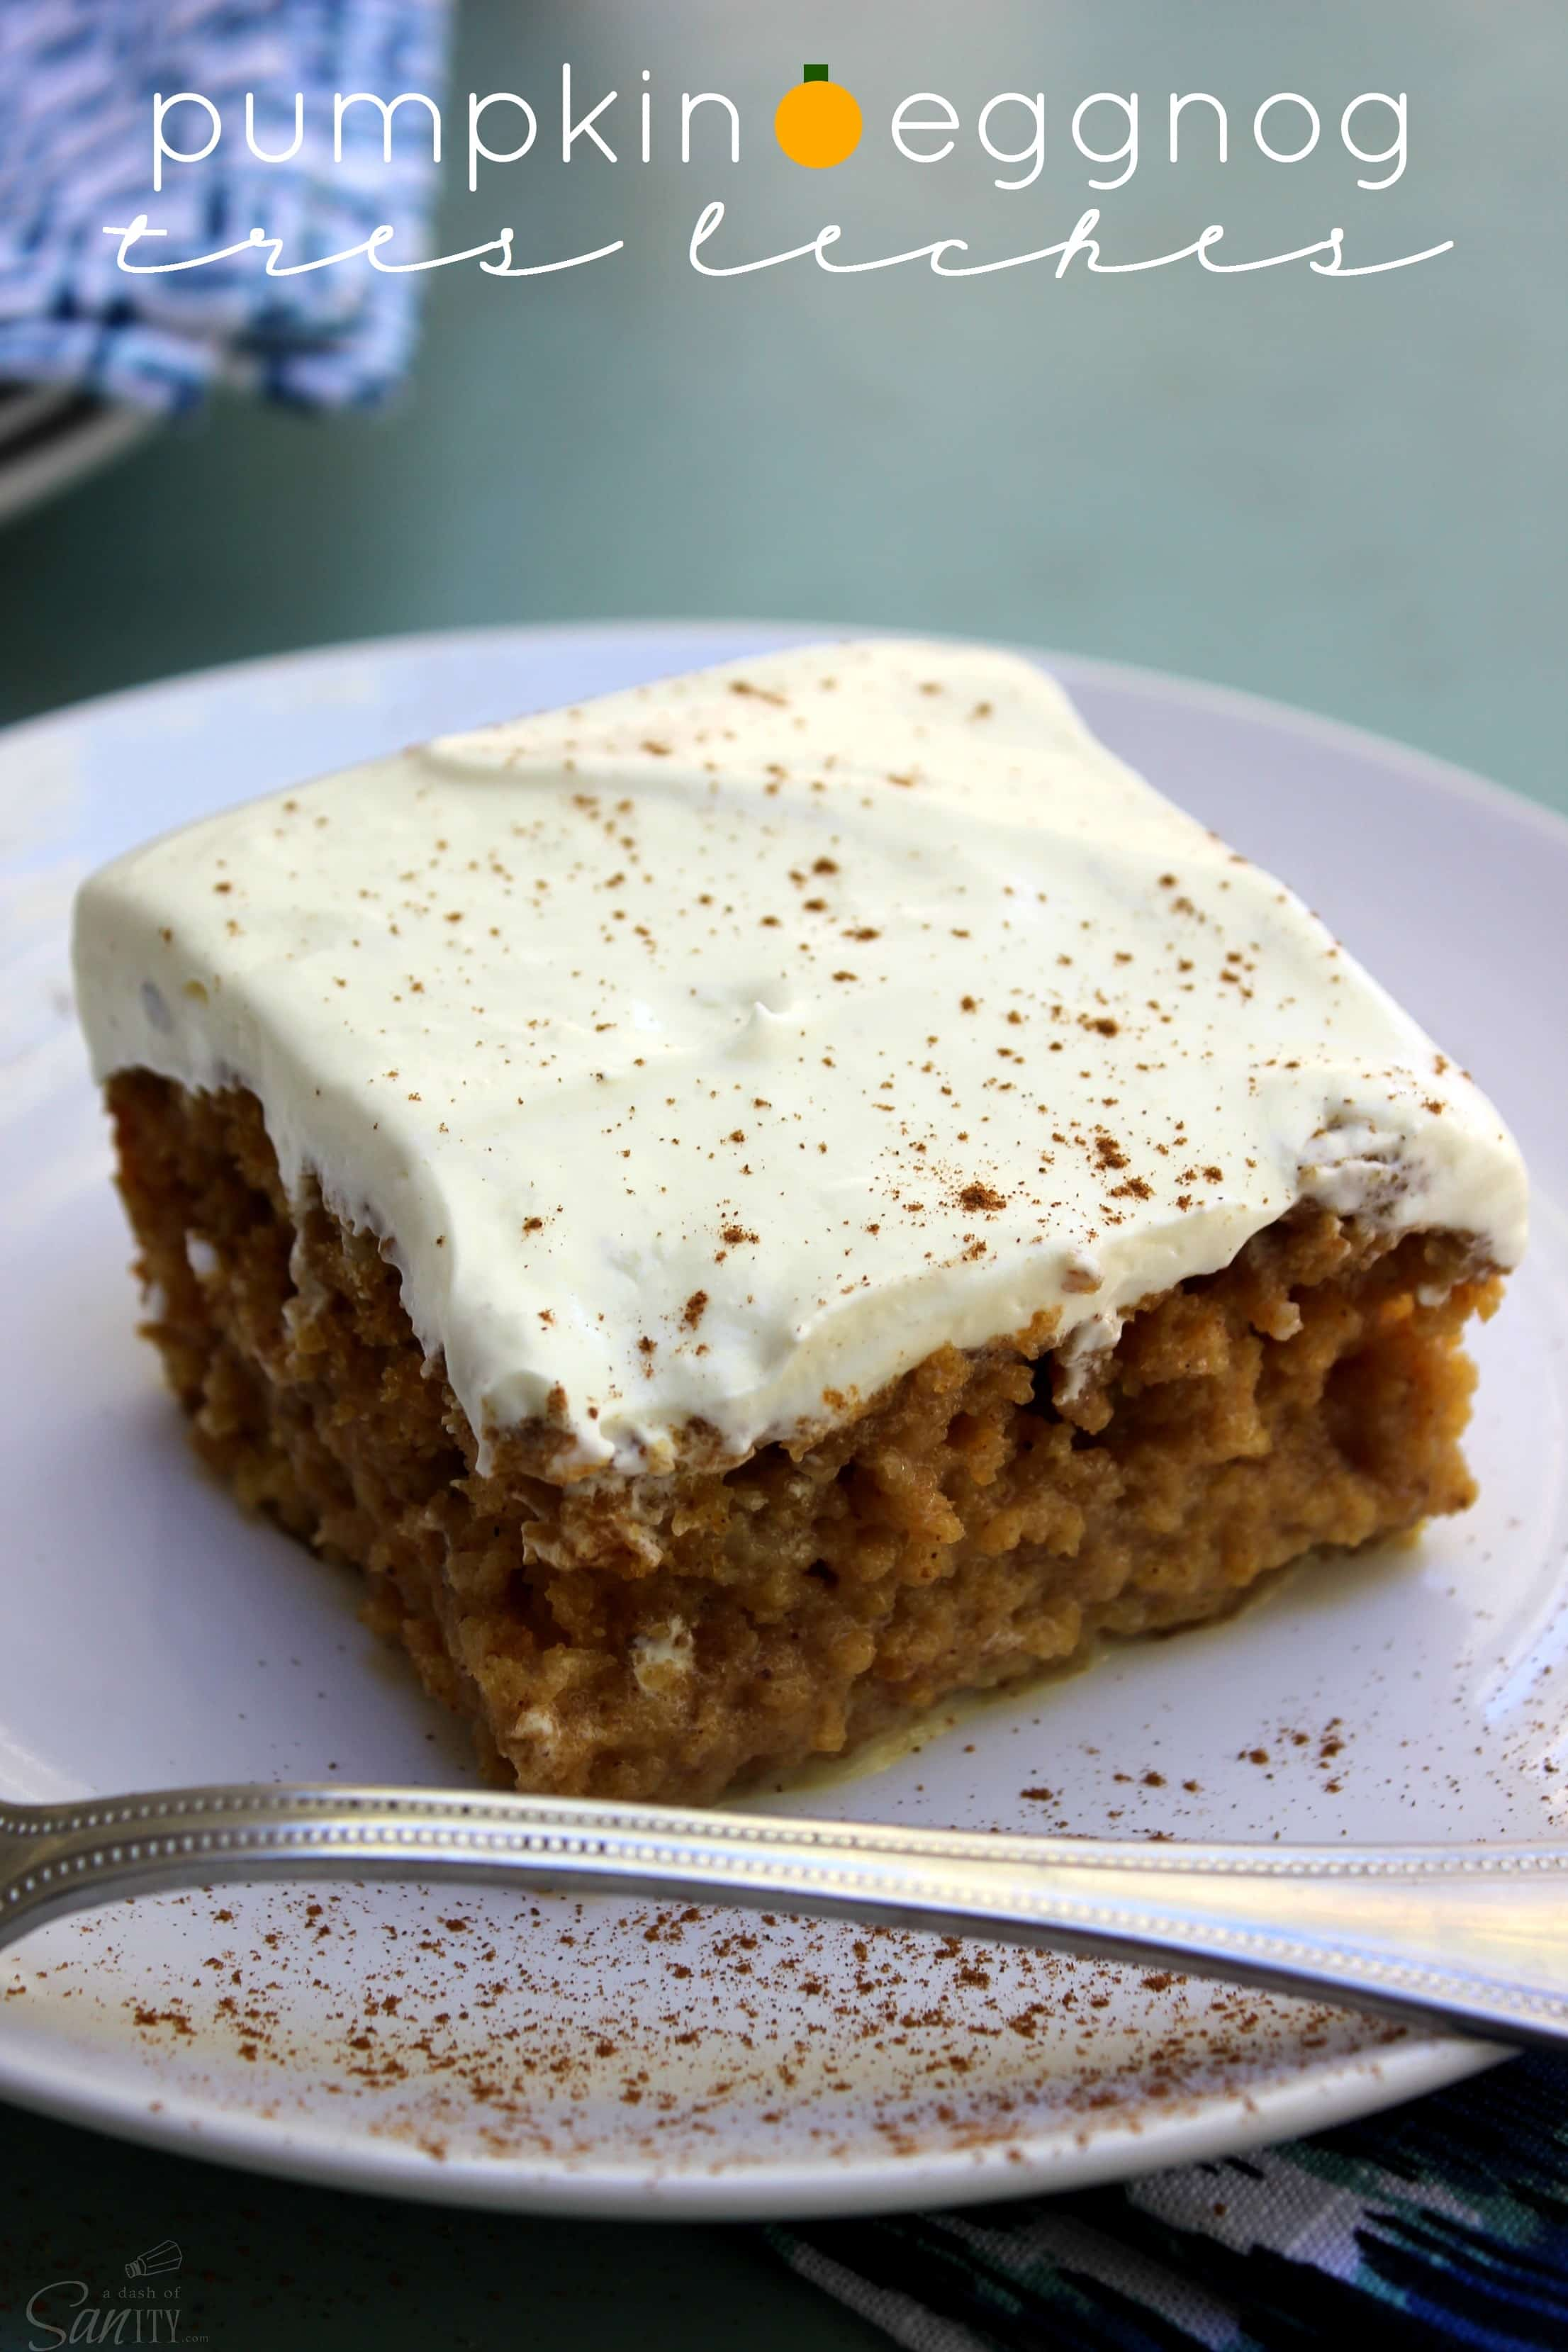 Pumpkin Eggnog Tres Leches is a pumpkin cake soaked in a eggnog-milk ...